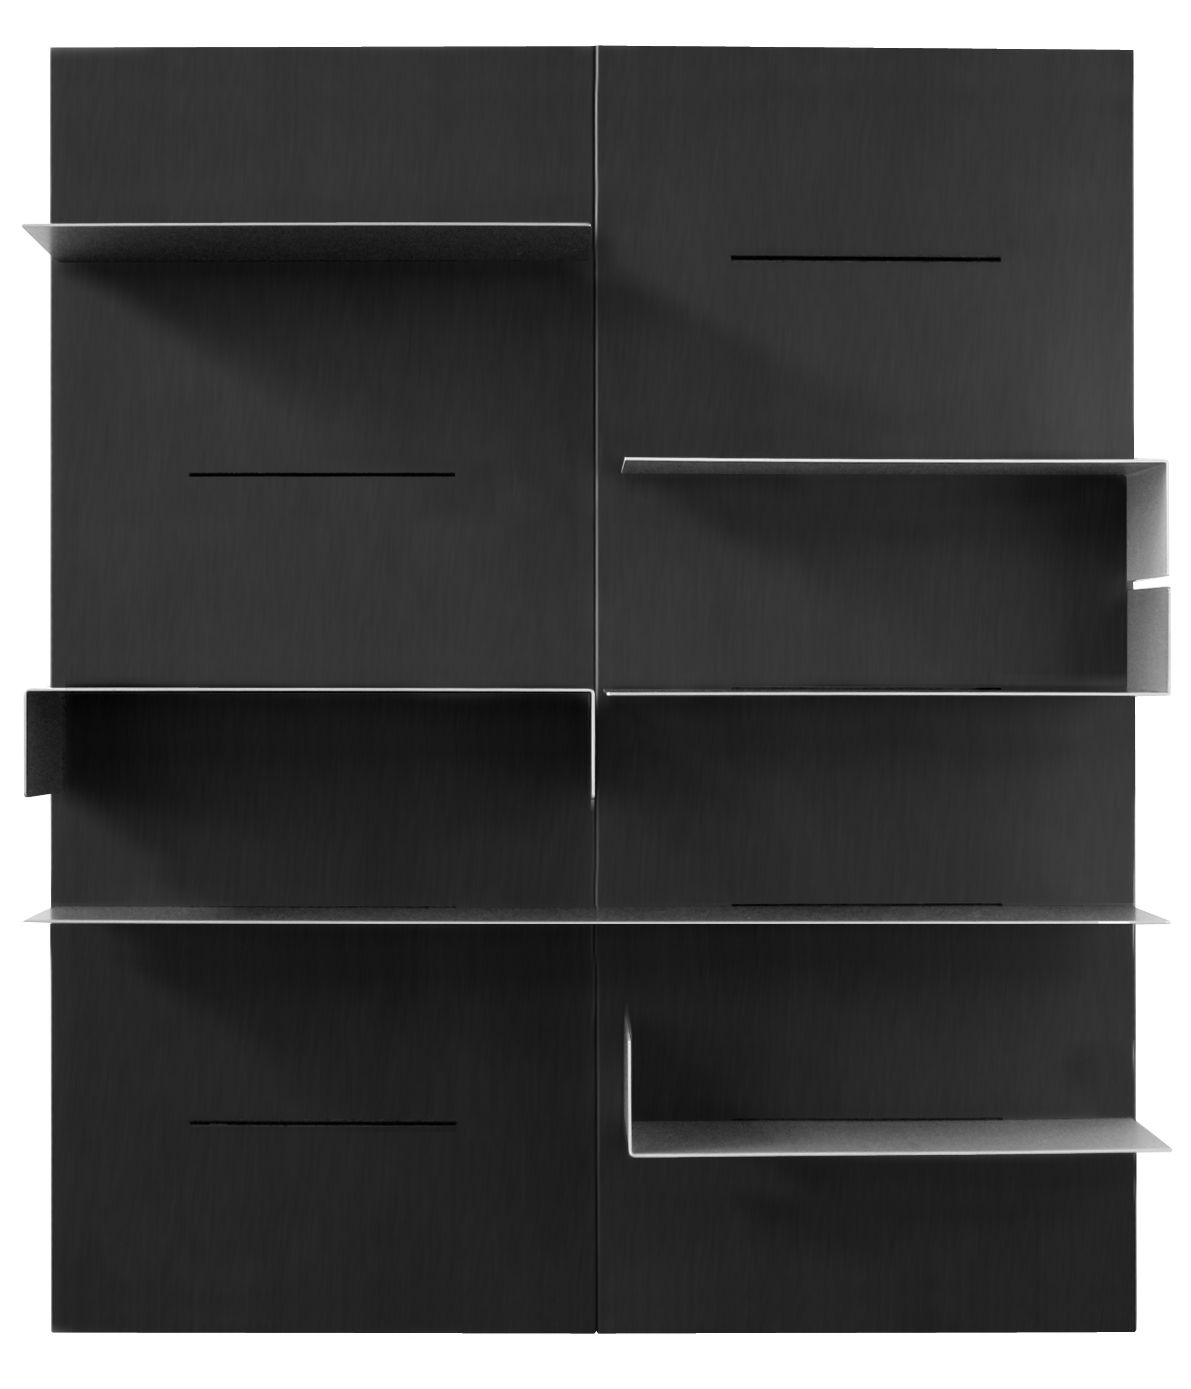 Furniture - Bookcases & Bookshelves - iWall Bookcase - composition with 2 boards - L 160 x H 190 cm by Zeus - Black - Phosphated steel